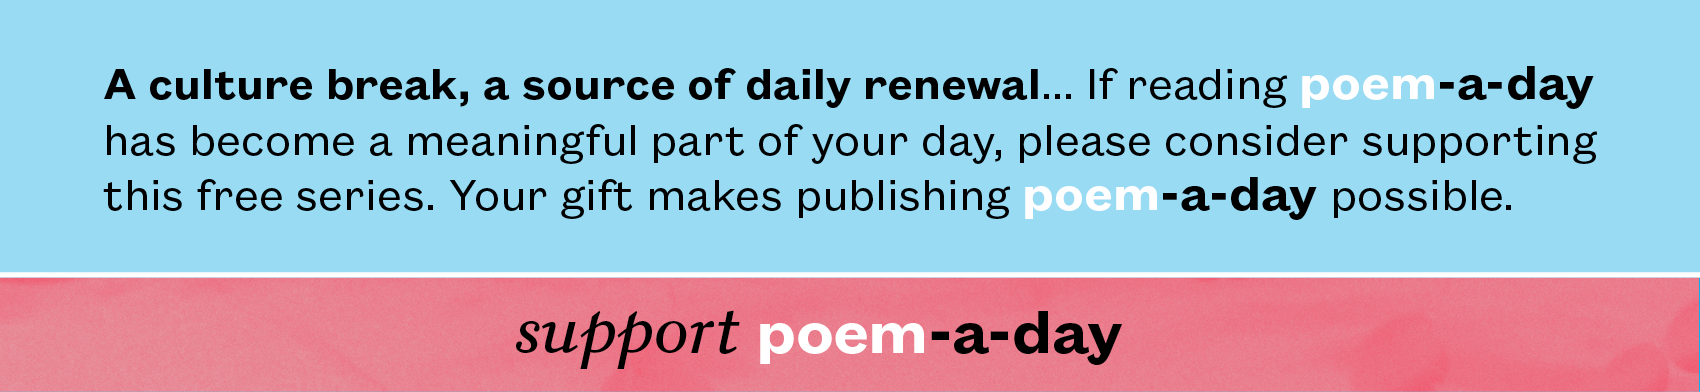 support poem-a-day